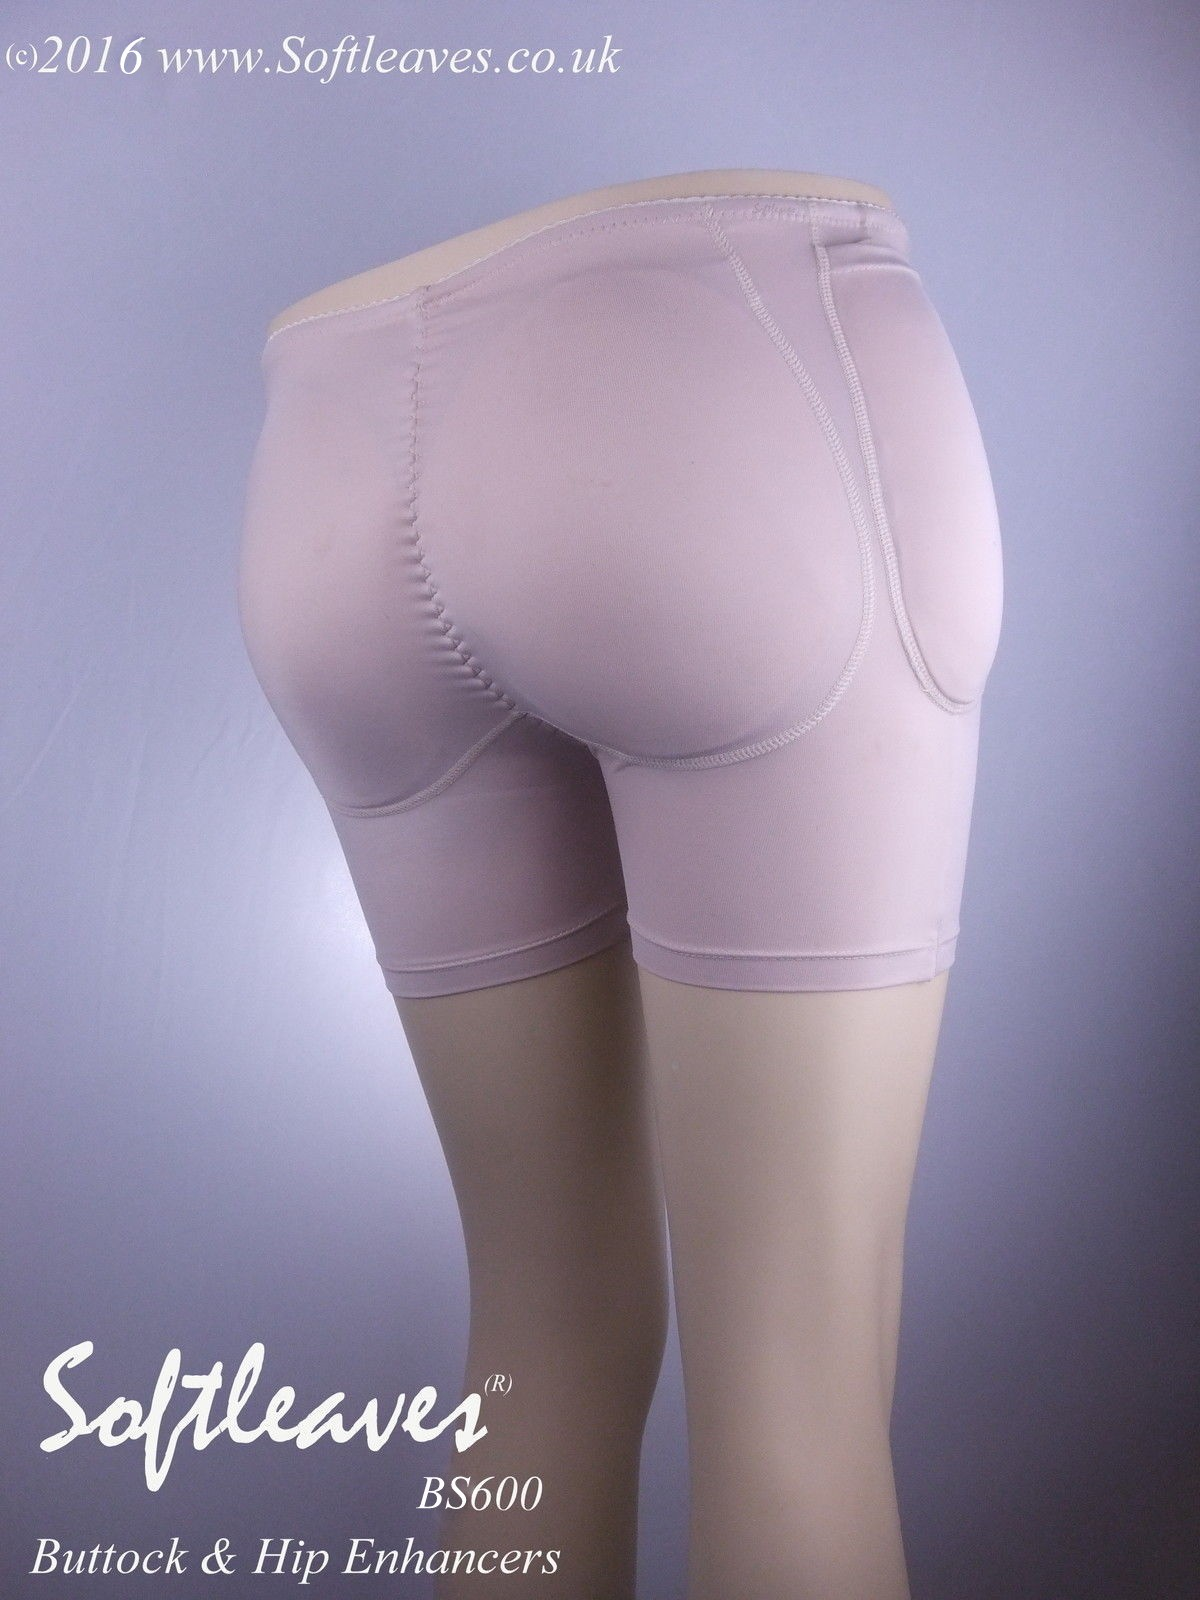 37b02683f6c Softleaves BS600 Silicone Buttocks and Hip Enhancers Padded Panties and  Pants